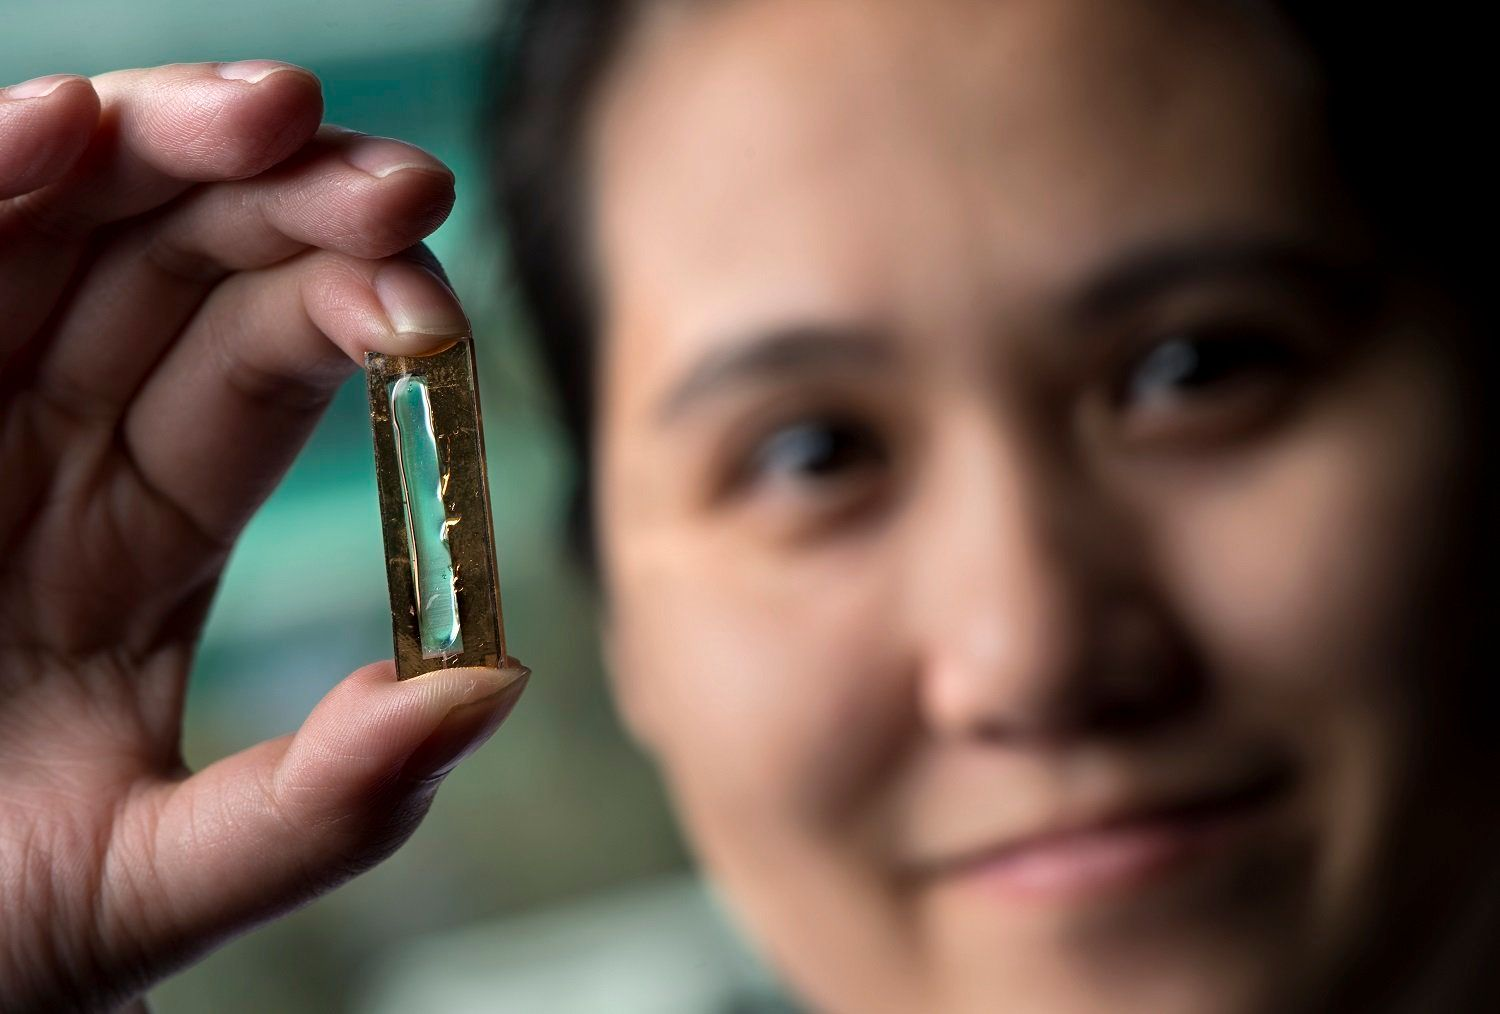 Mya Le Thai, a doctoral candidate at the University of California, Irvine, holdingthe nanowire-based technology that al